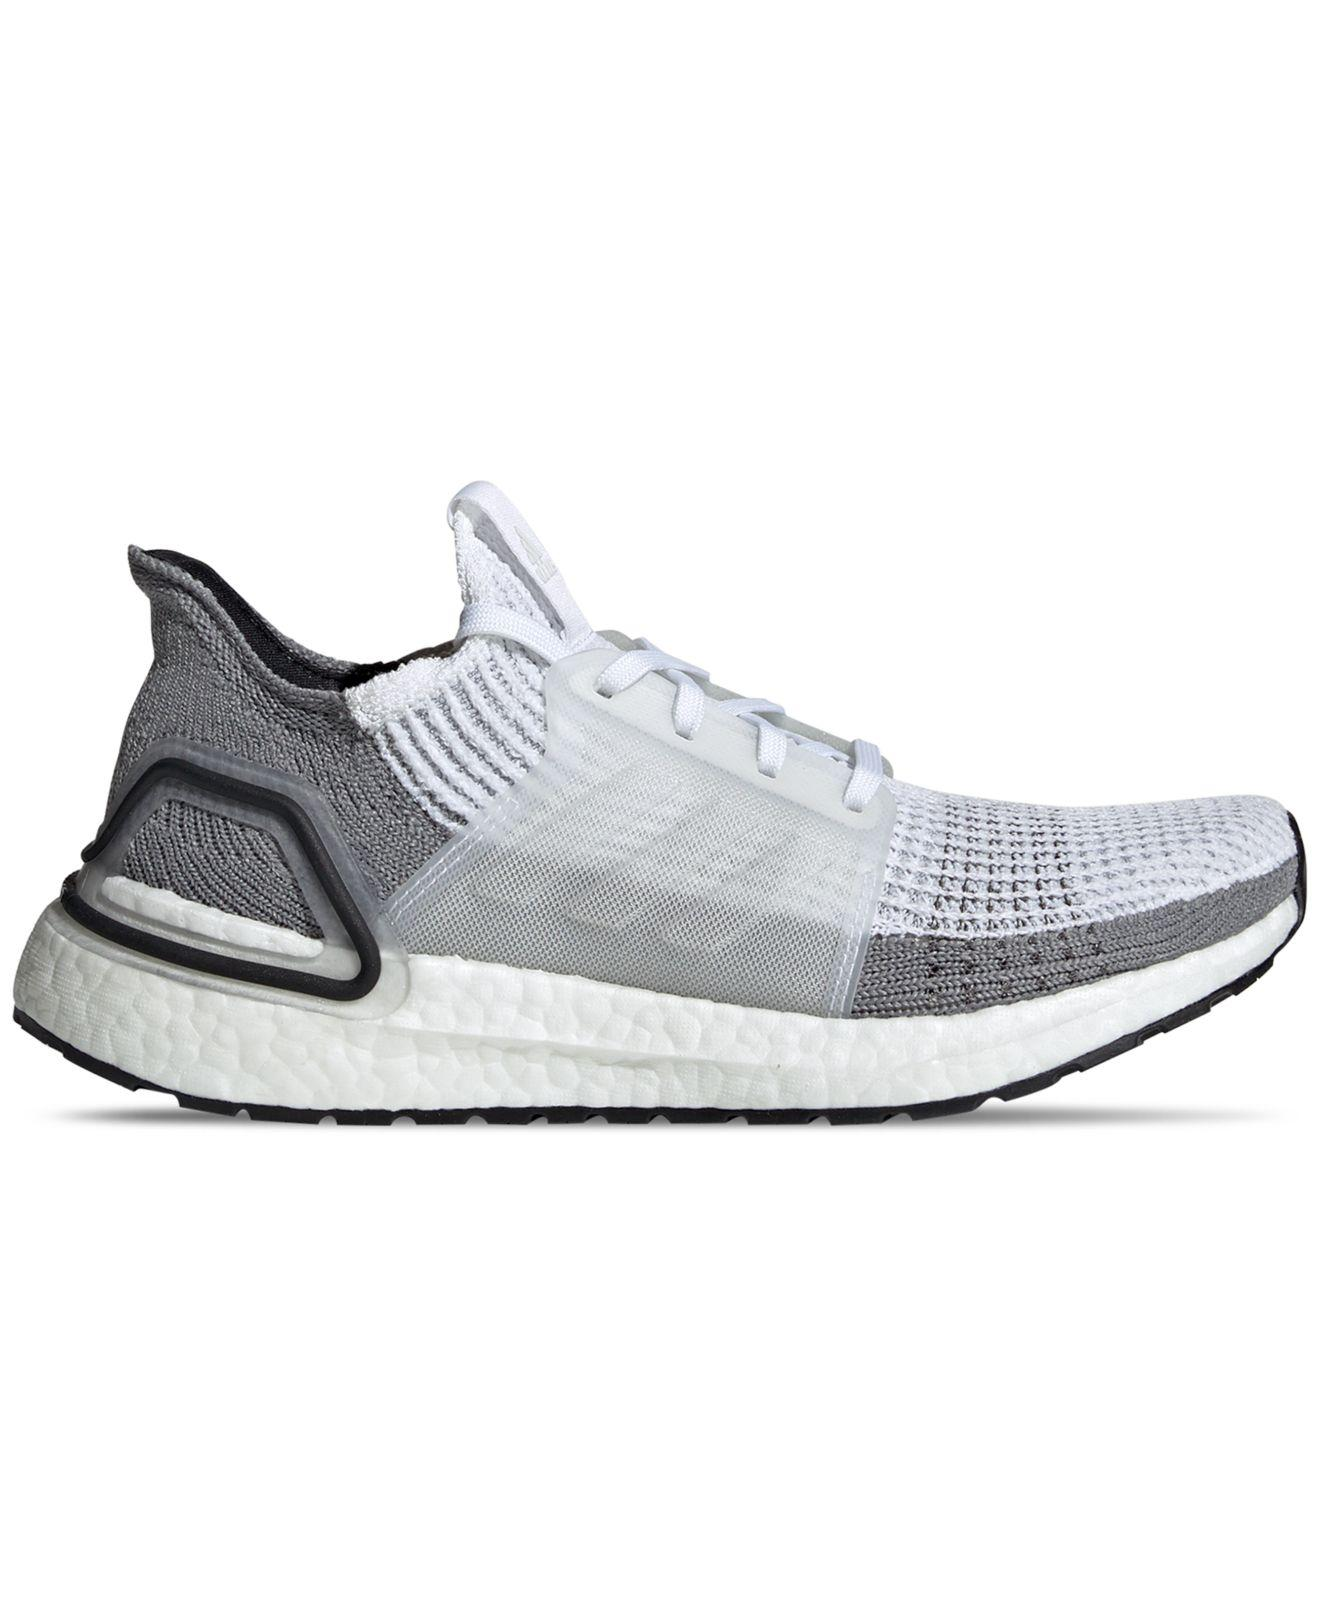 c826a94beccf2 Lyst - adidas Ultraboost 19 Running Sneakers From Finish Line in White